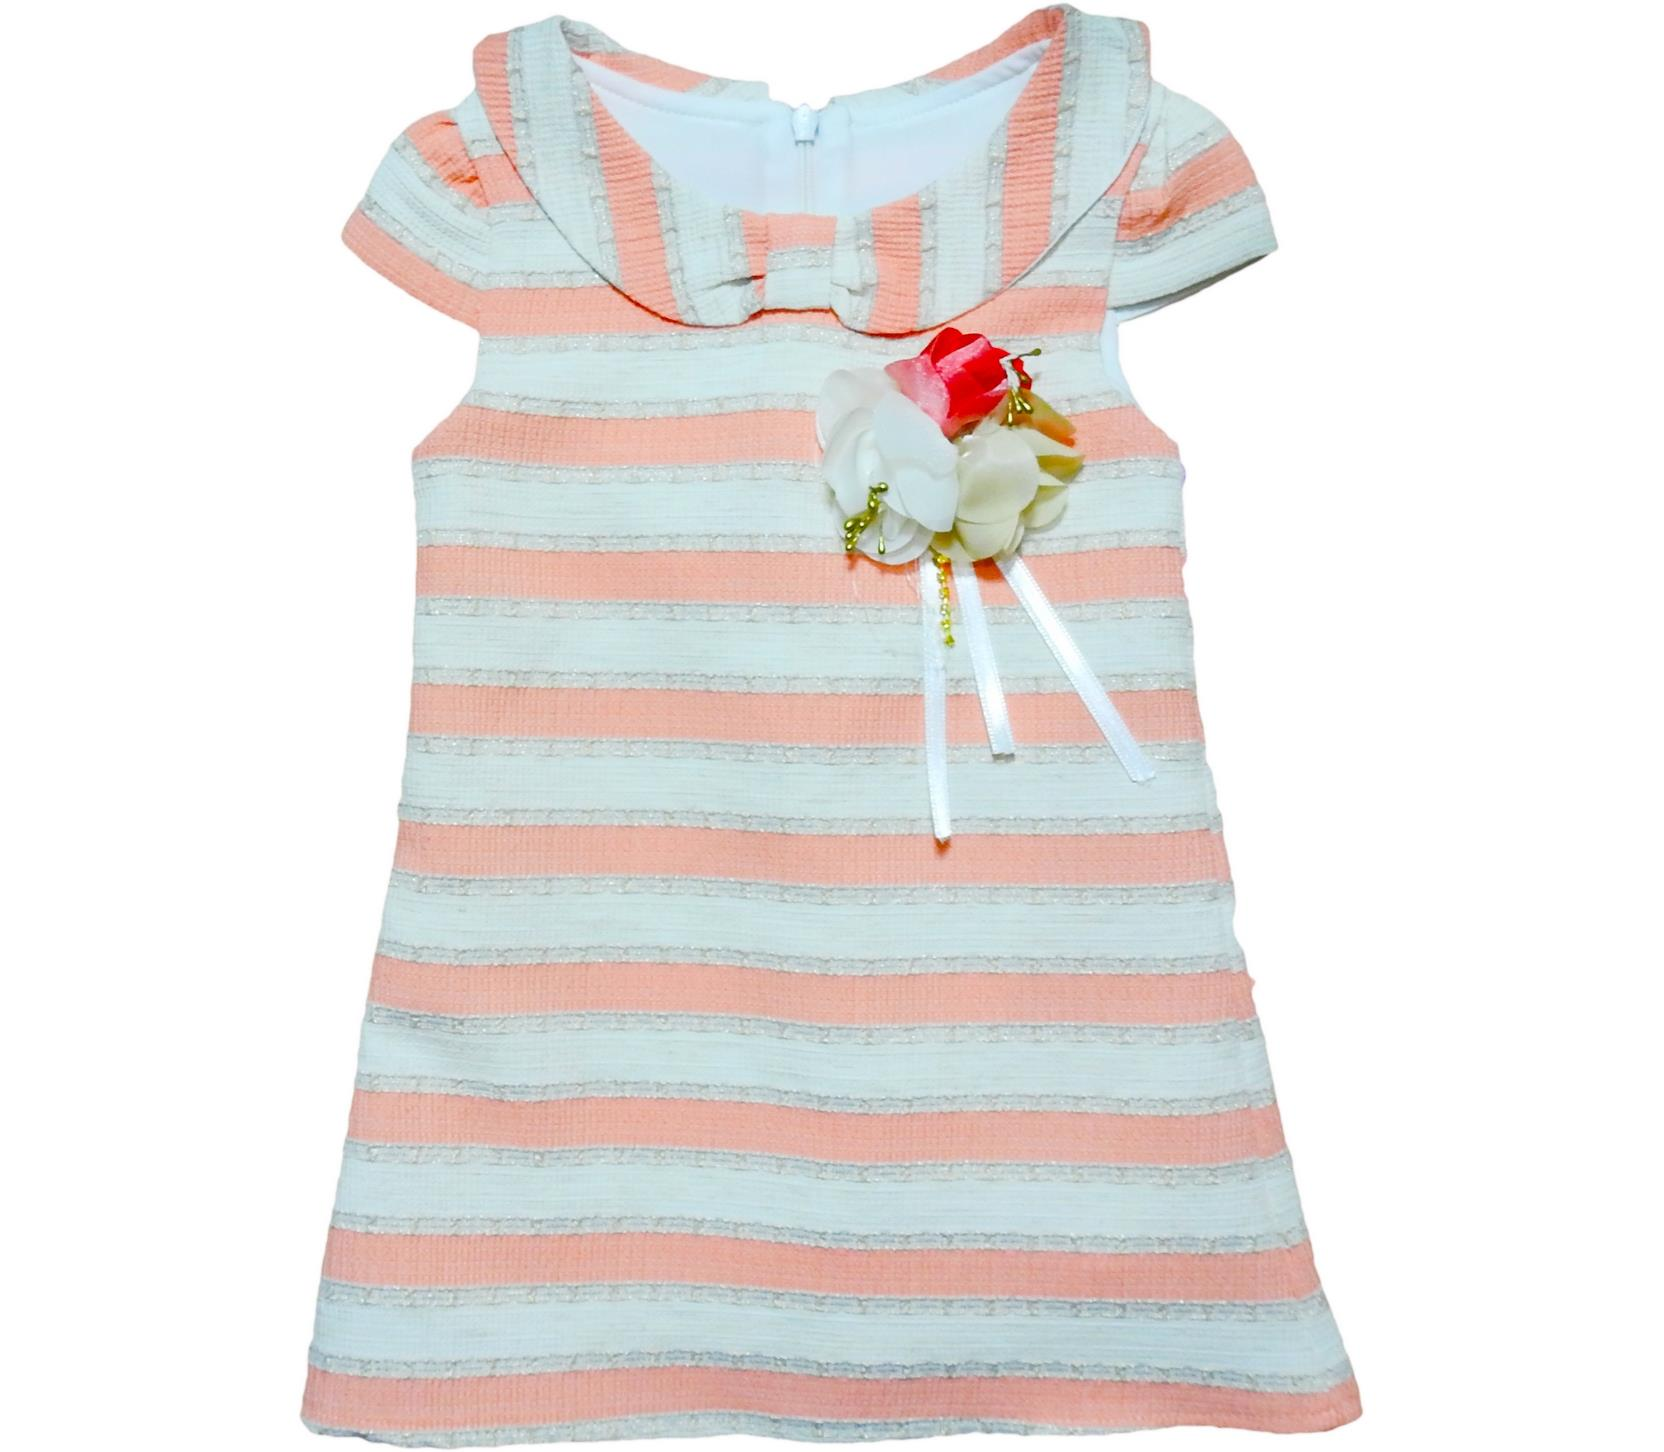 8121 Wholesale decorative flower applique striped dress for girl kids clothes (5-6-7-8 age)